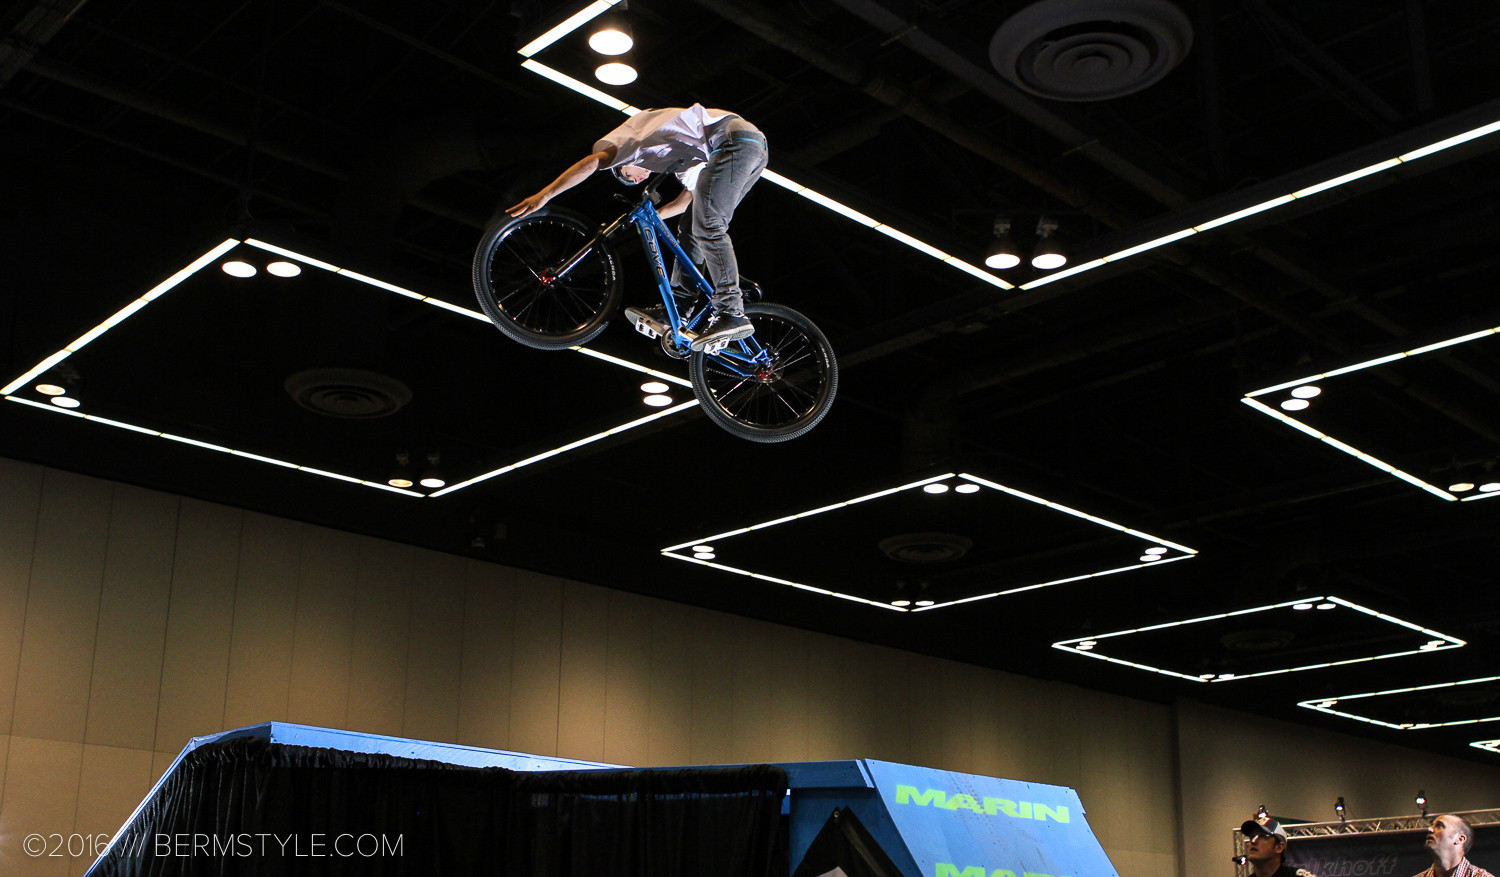 Carson Storch at the PDX Bikeshow, 2010.